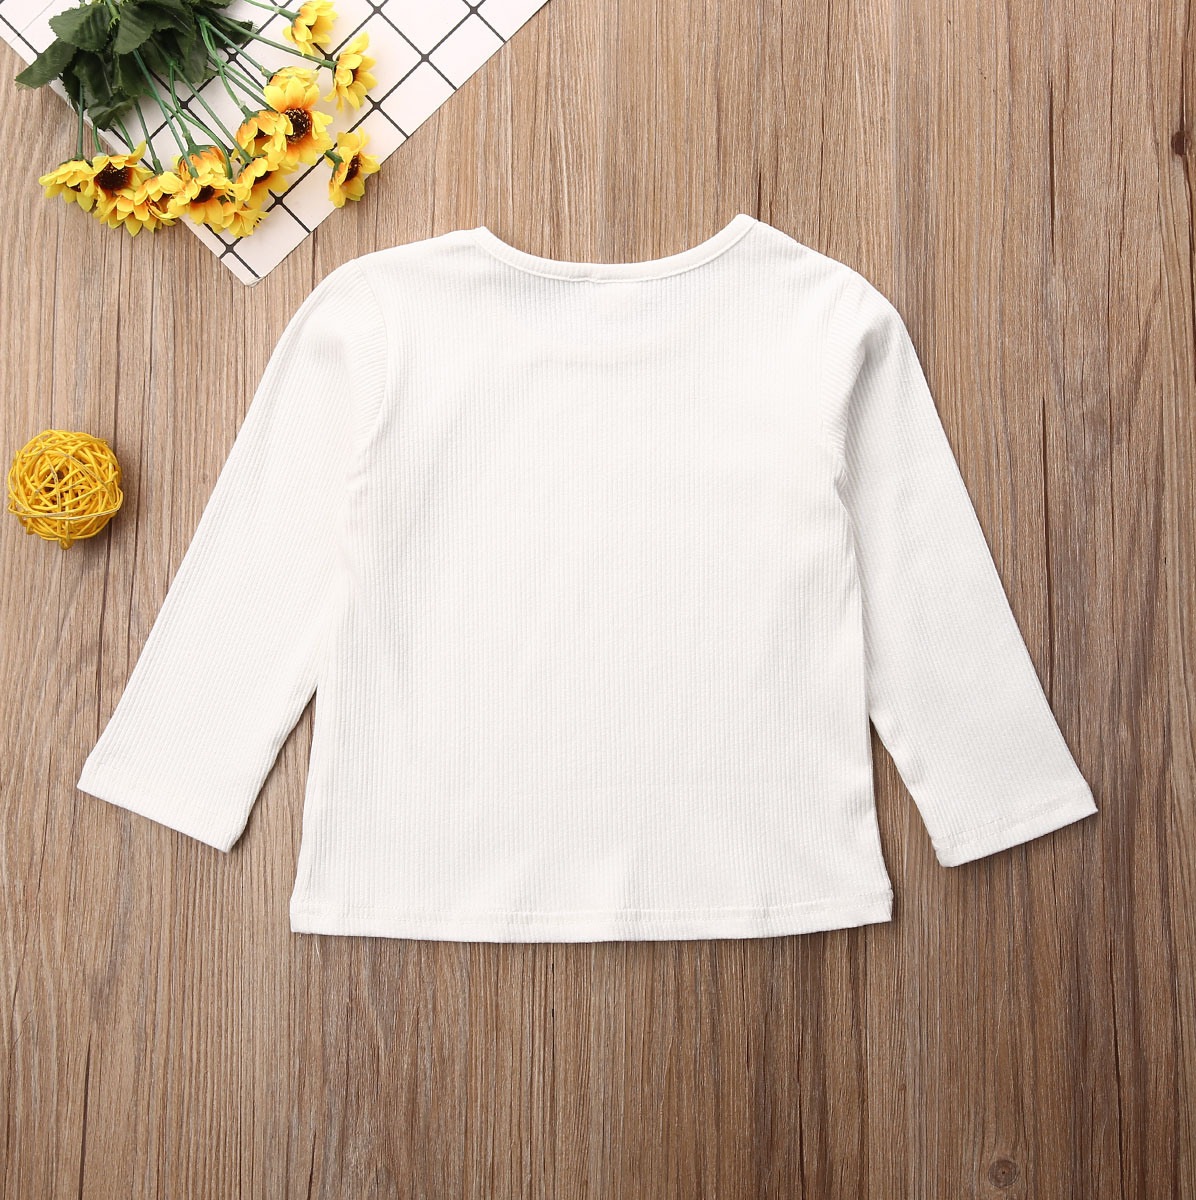 Children Kid Baby Girl Boy Long Sleeve Solid Tops Shirts Tee Casual Tops Clothes